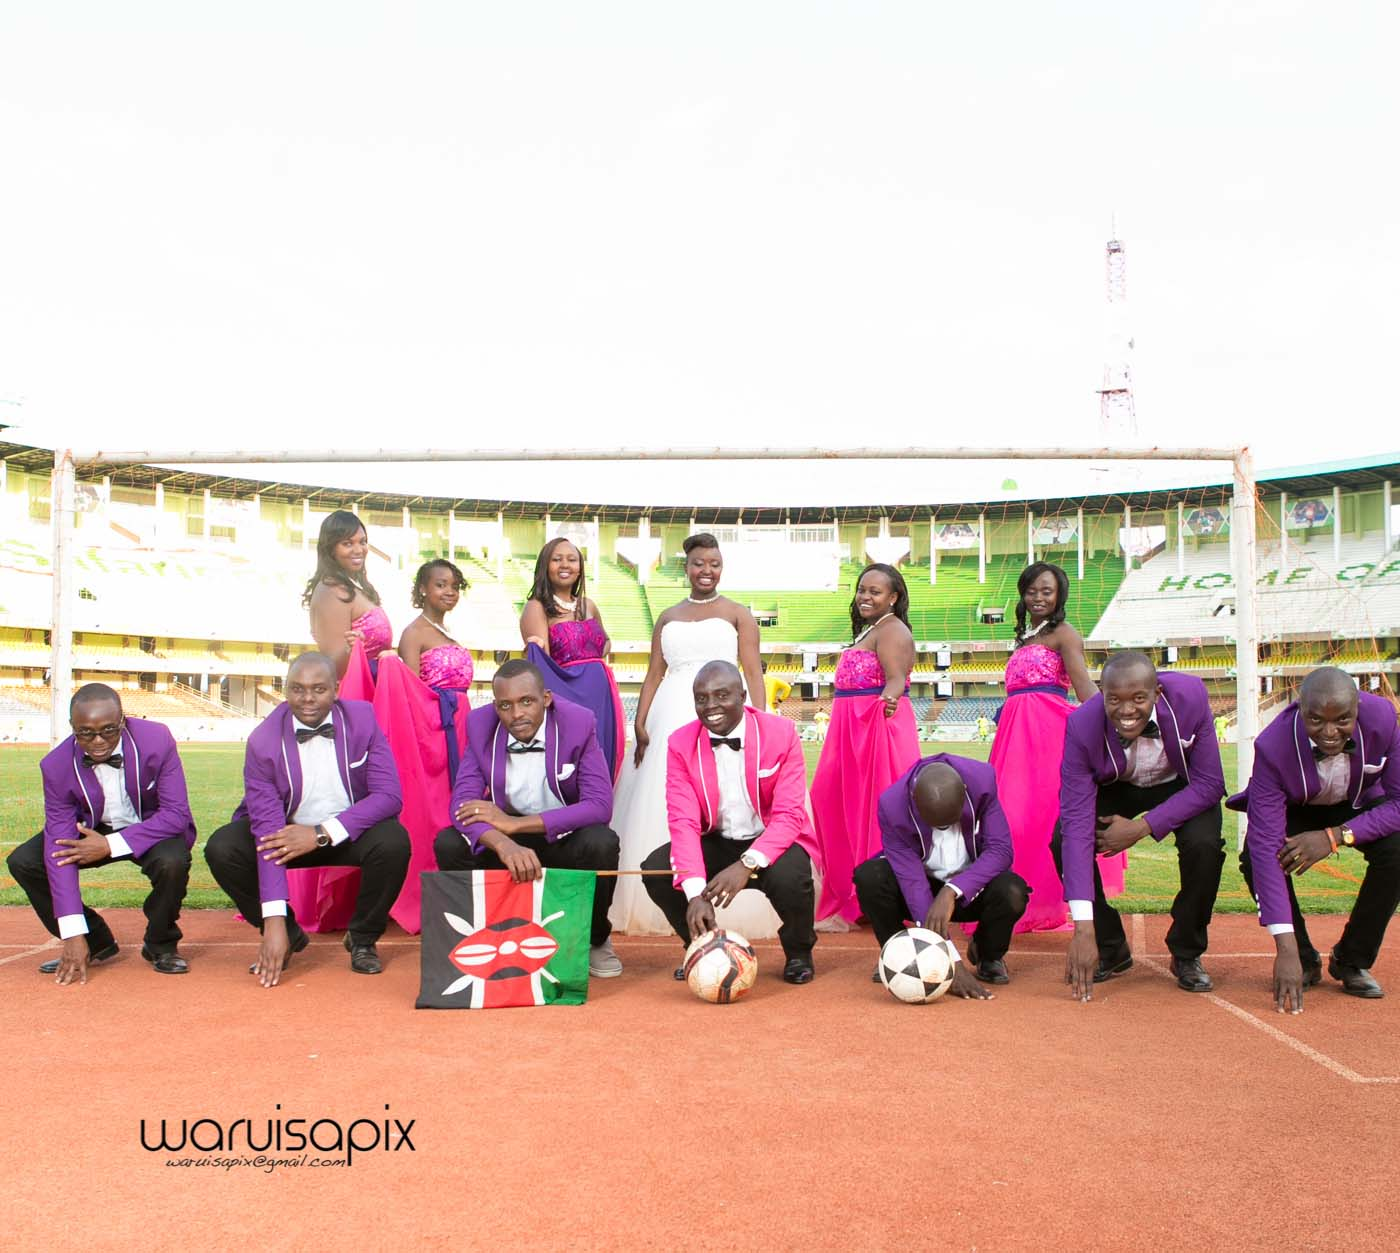 kenyas top wedding photogqrapher wedding at kasarani sports stadium (112 of 127)